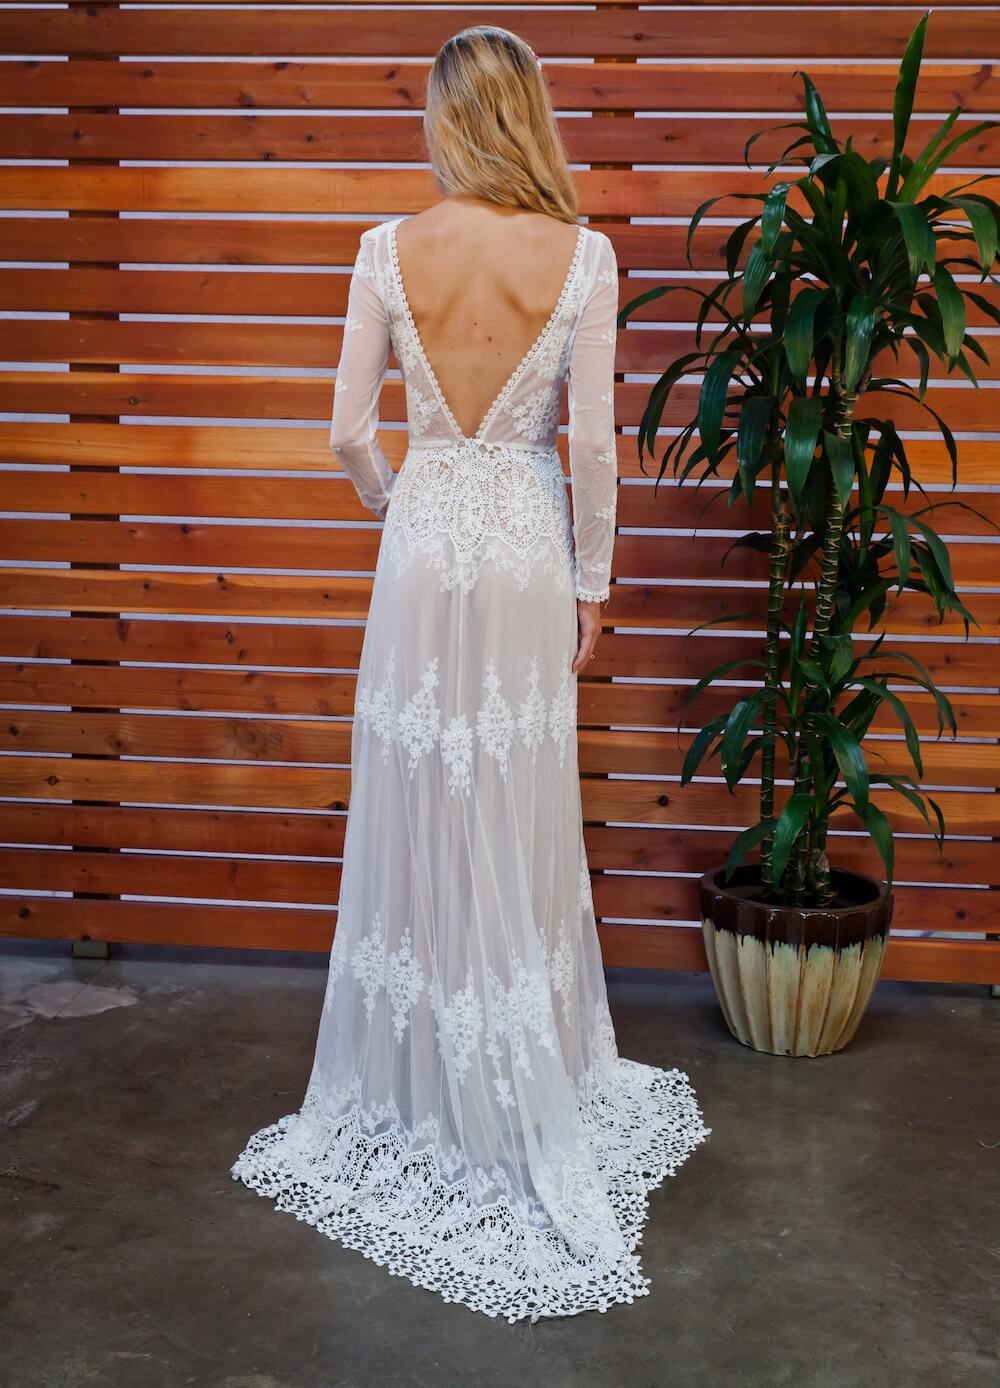 Backless Lace Long Sleeved Dress In Casual Wedding